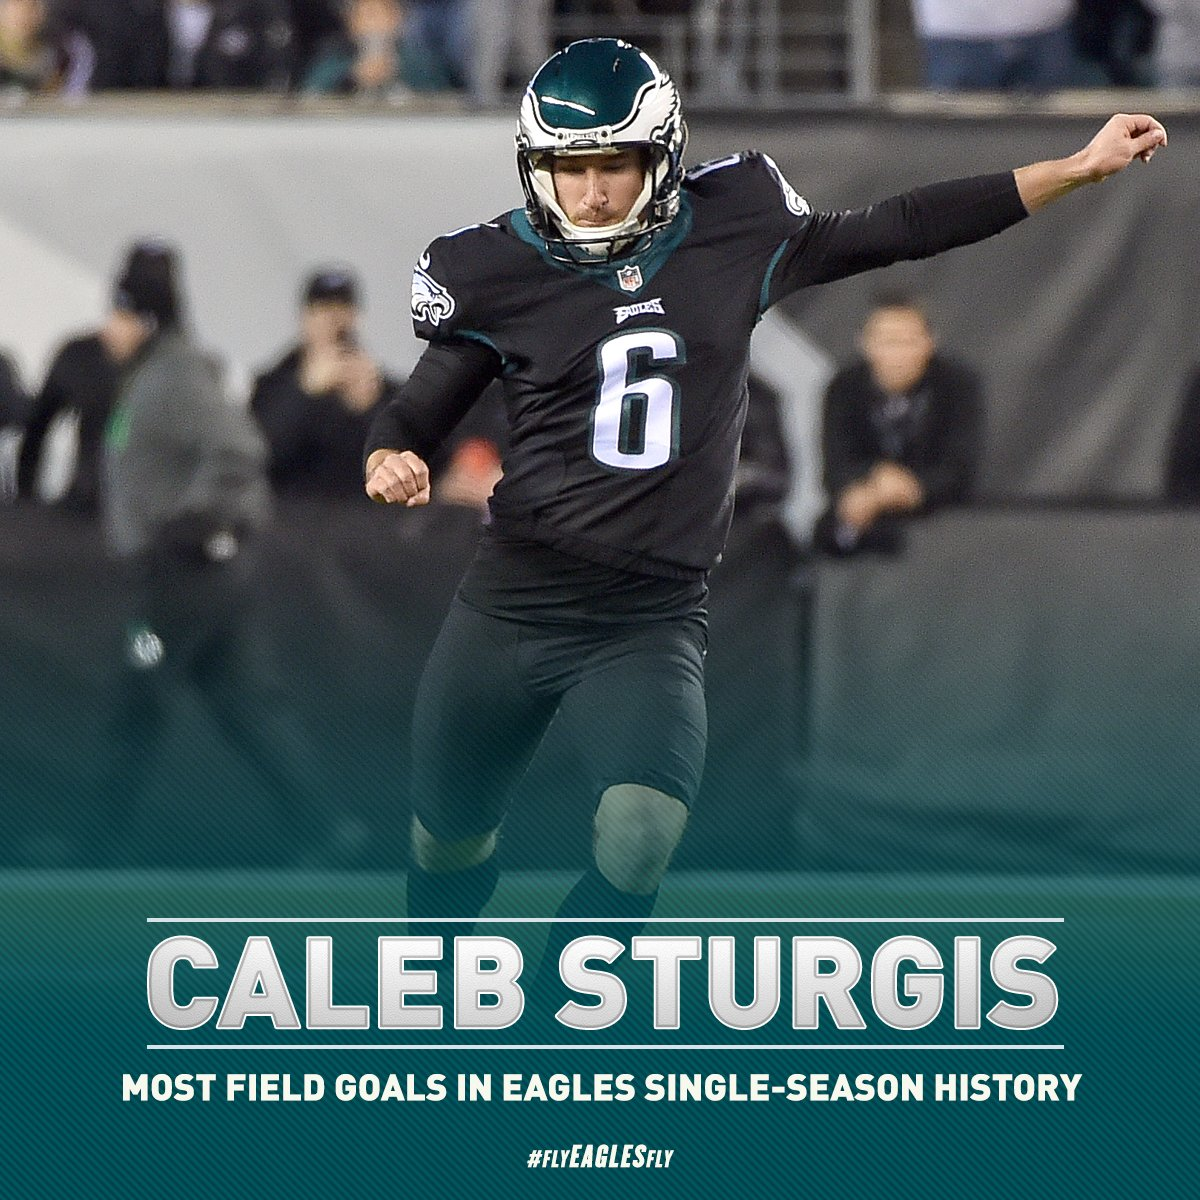 With that kick, Caleb Sturgis has set a new #Eagles single-season record for field goals.  #FlyEaglesFly https://t.co/v52zhC3qM9